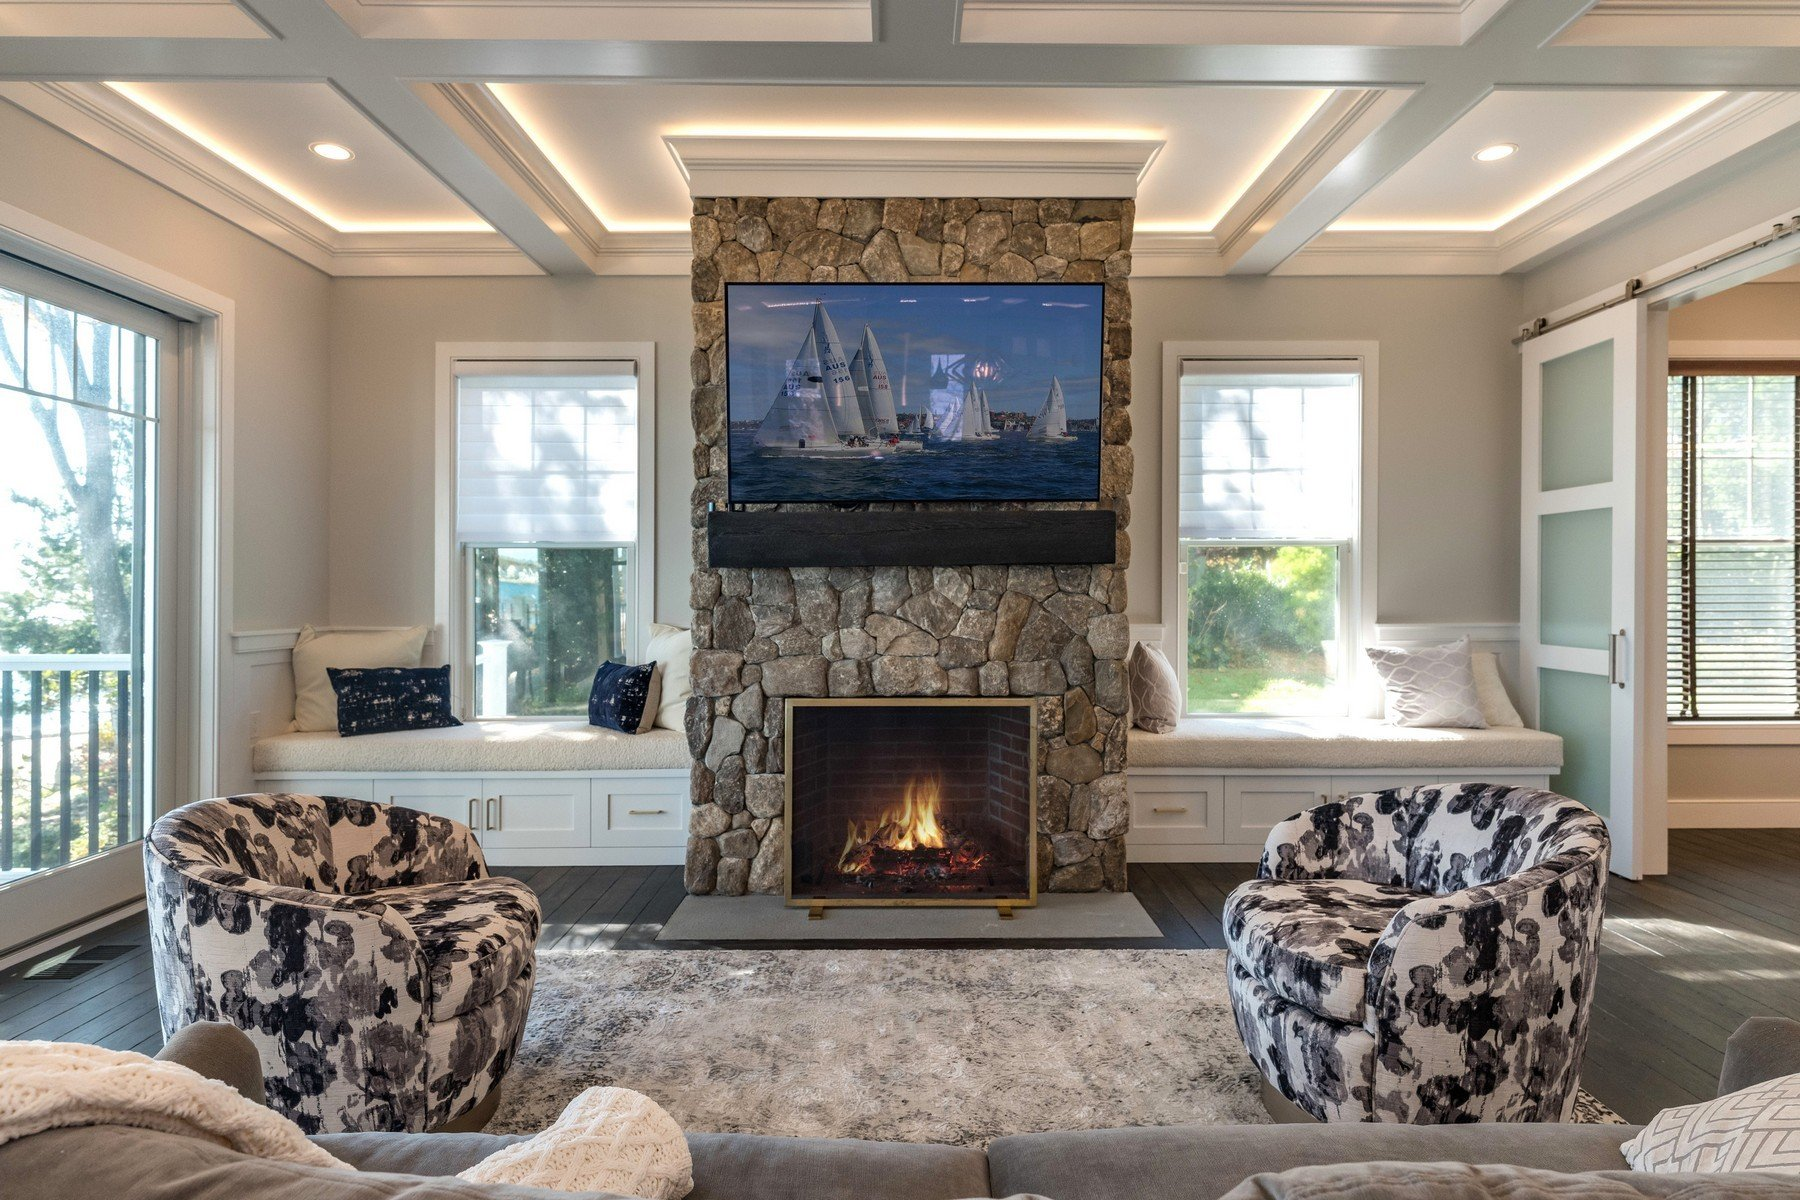 Living room with a wood burning fireplace surrounded by window seating.